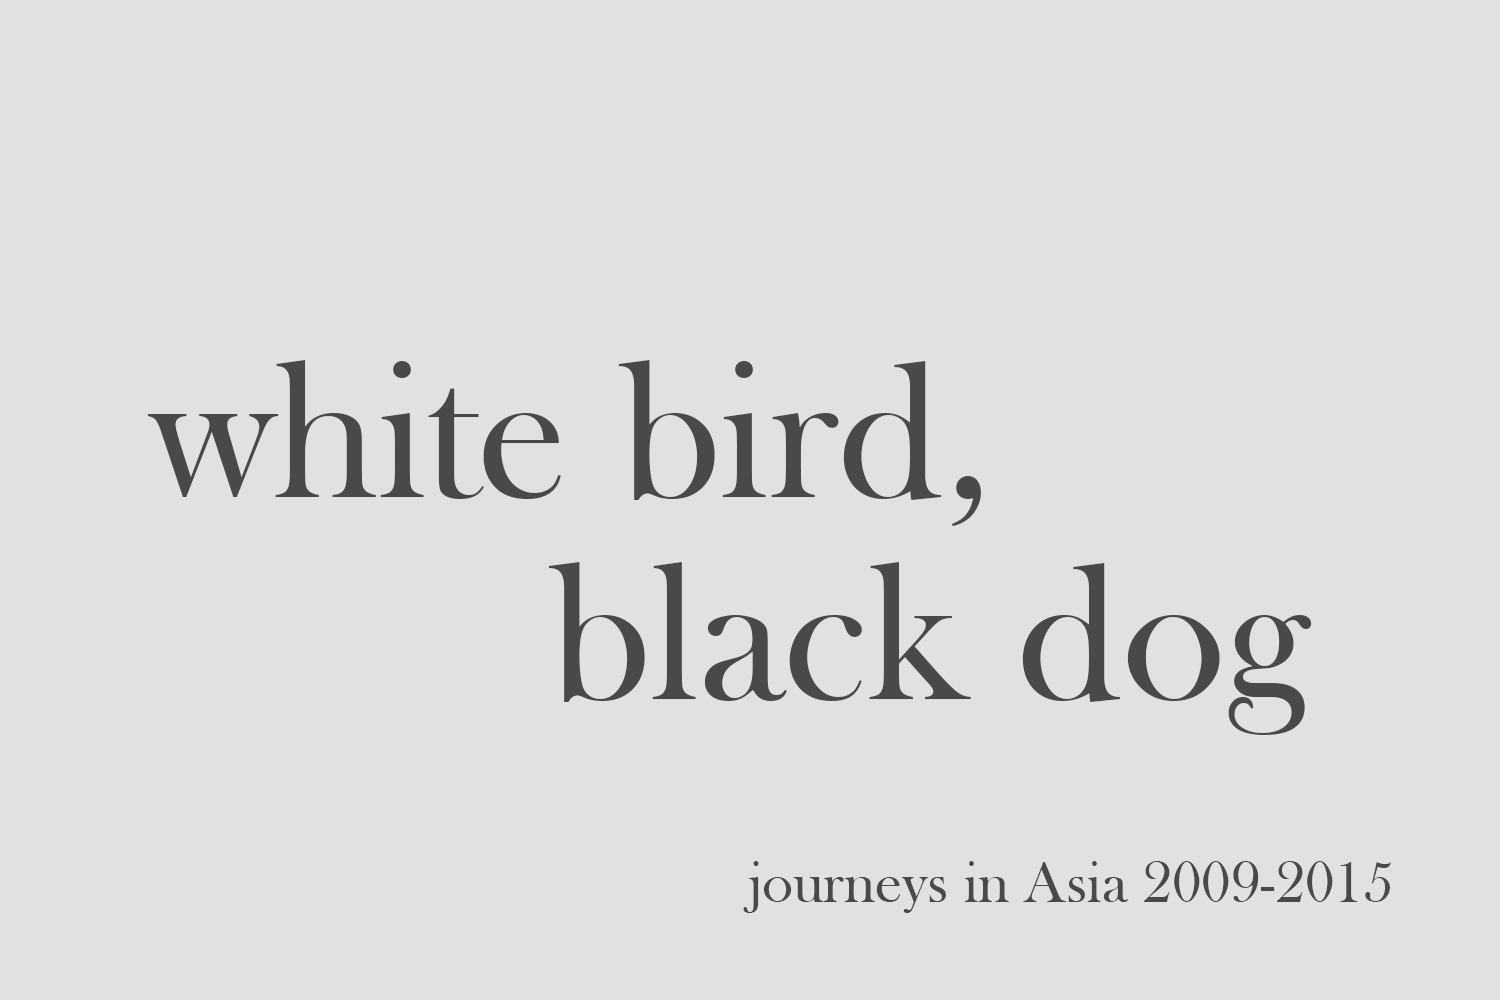 2_white bird black dog.jpg